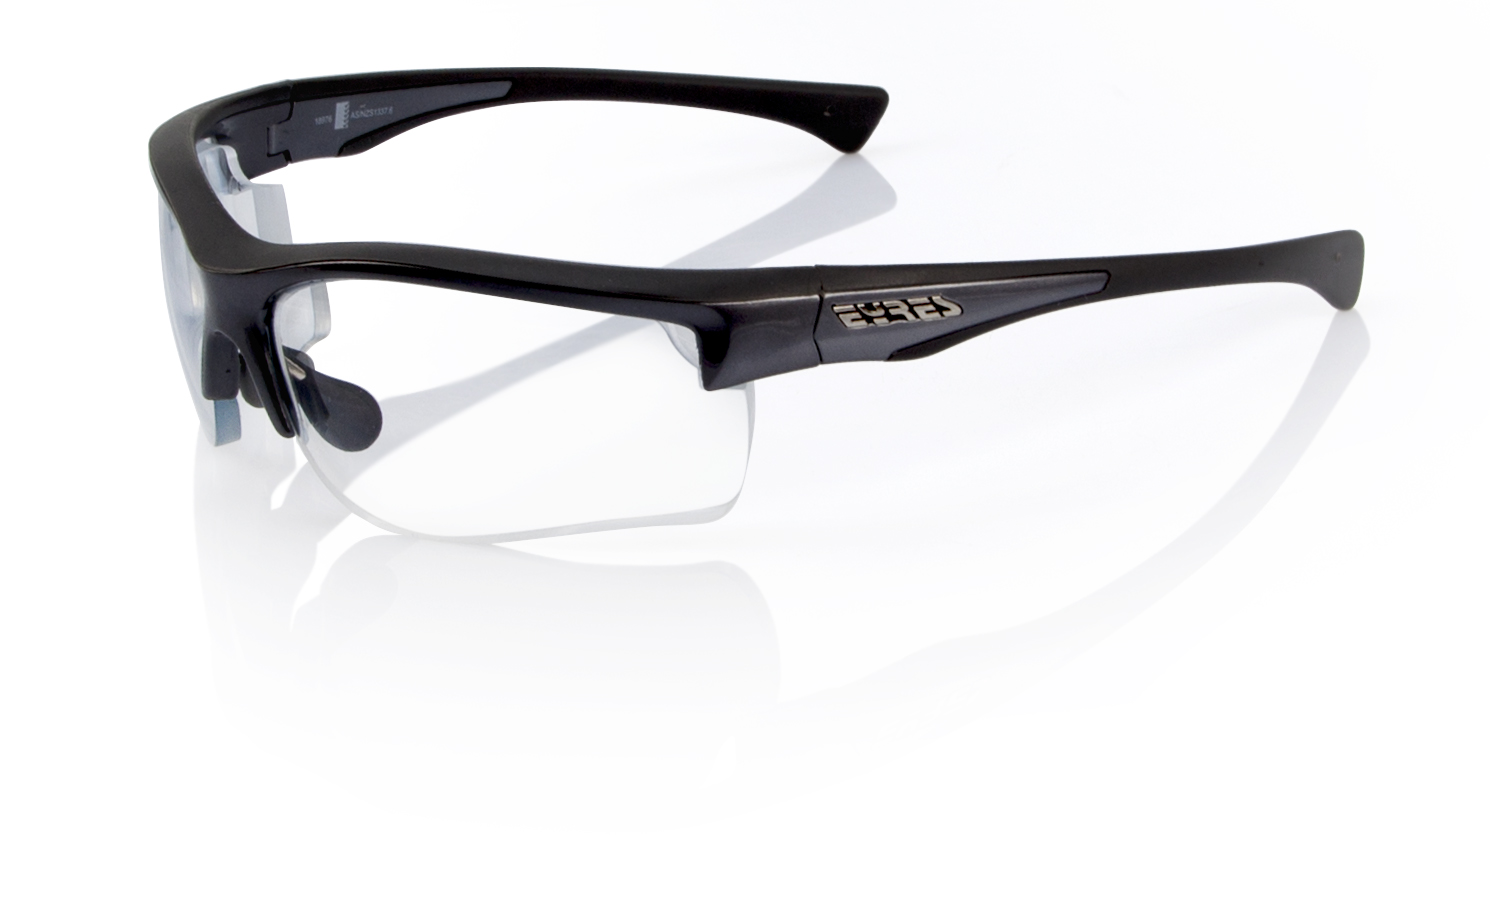 21d7744b4f40 ... Gullwing Prescription Safety Glasses. 950Rx eyres gullwing semi-rimless